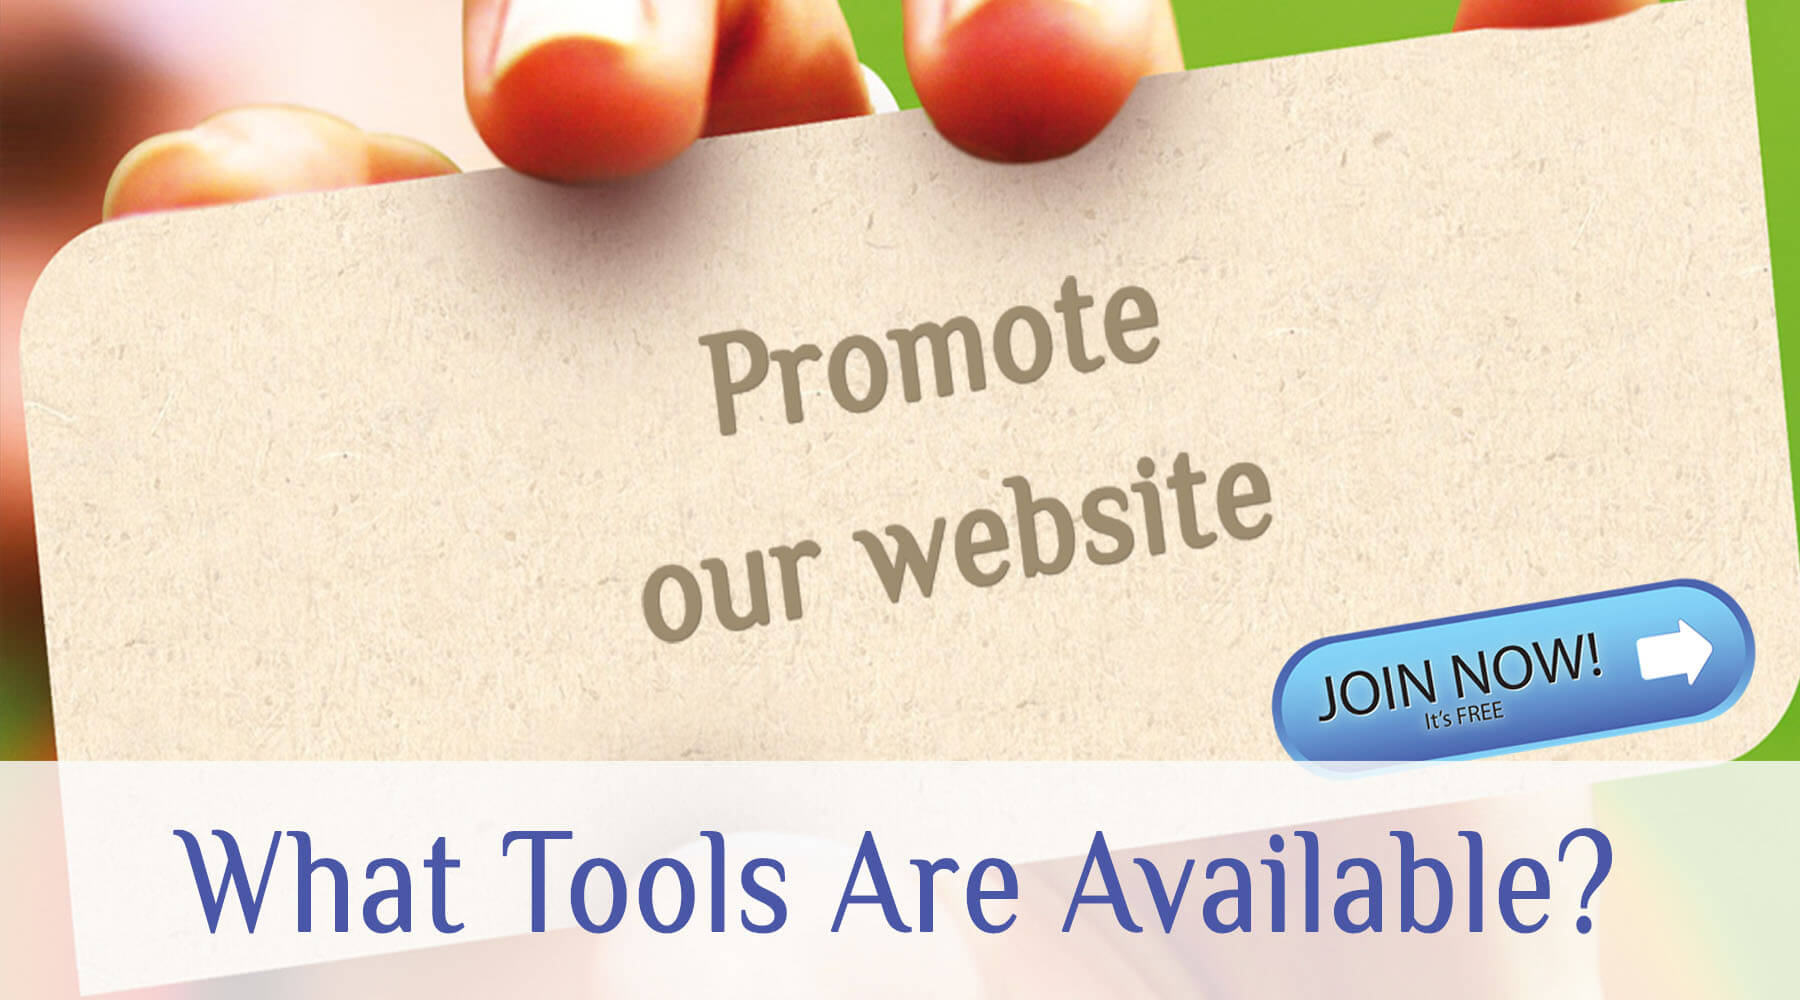 Wallhogs Marketing Affiliate Partner Program | What Tools Are Available?